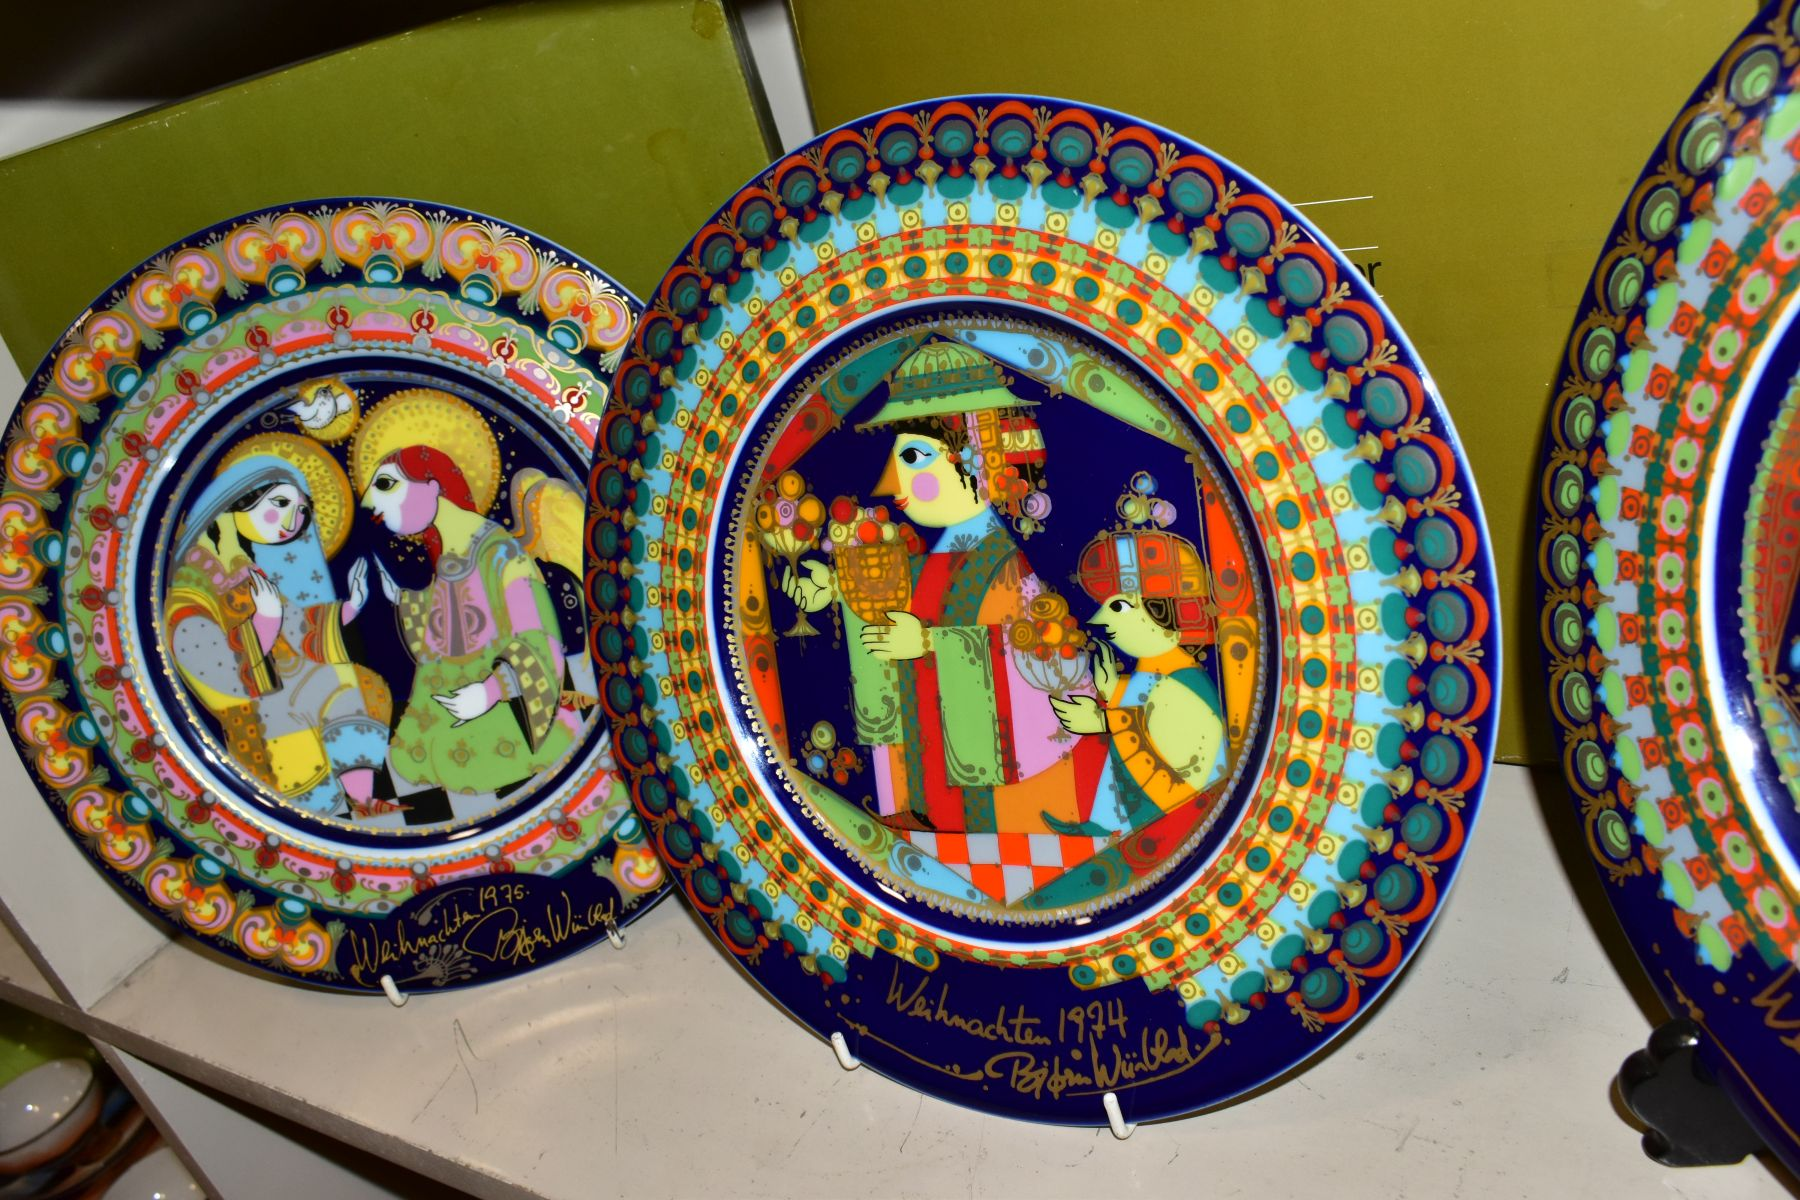 THREE BOXED ROSENTHAL CHRISTMAS PLATES, 1973, 1974 and 1975 all signed by Bijorn Wiinbald - Image 4 of 12